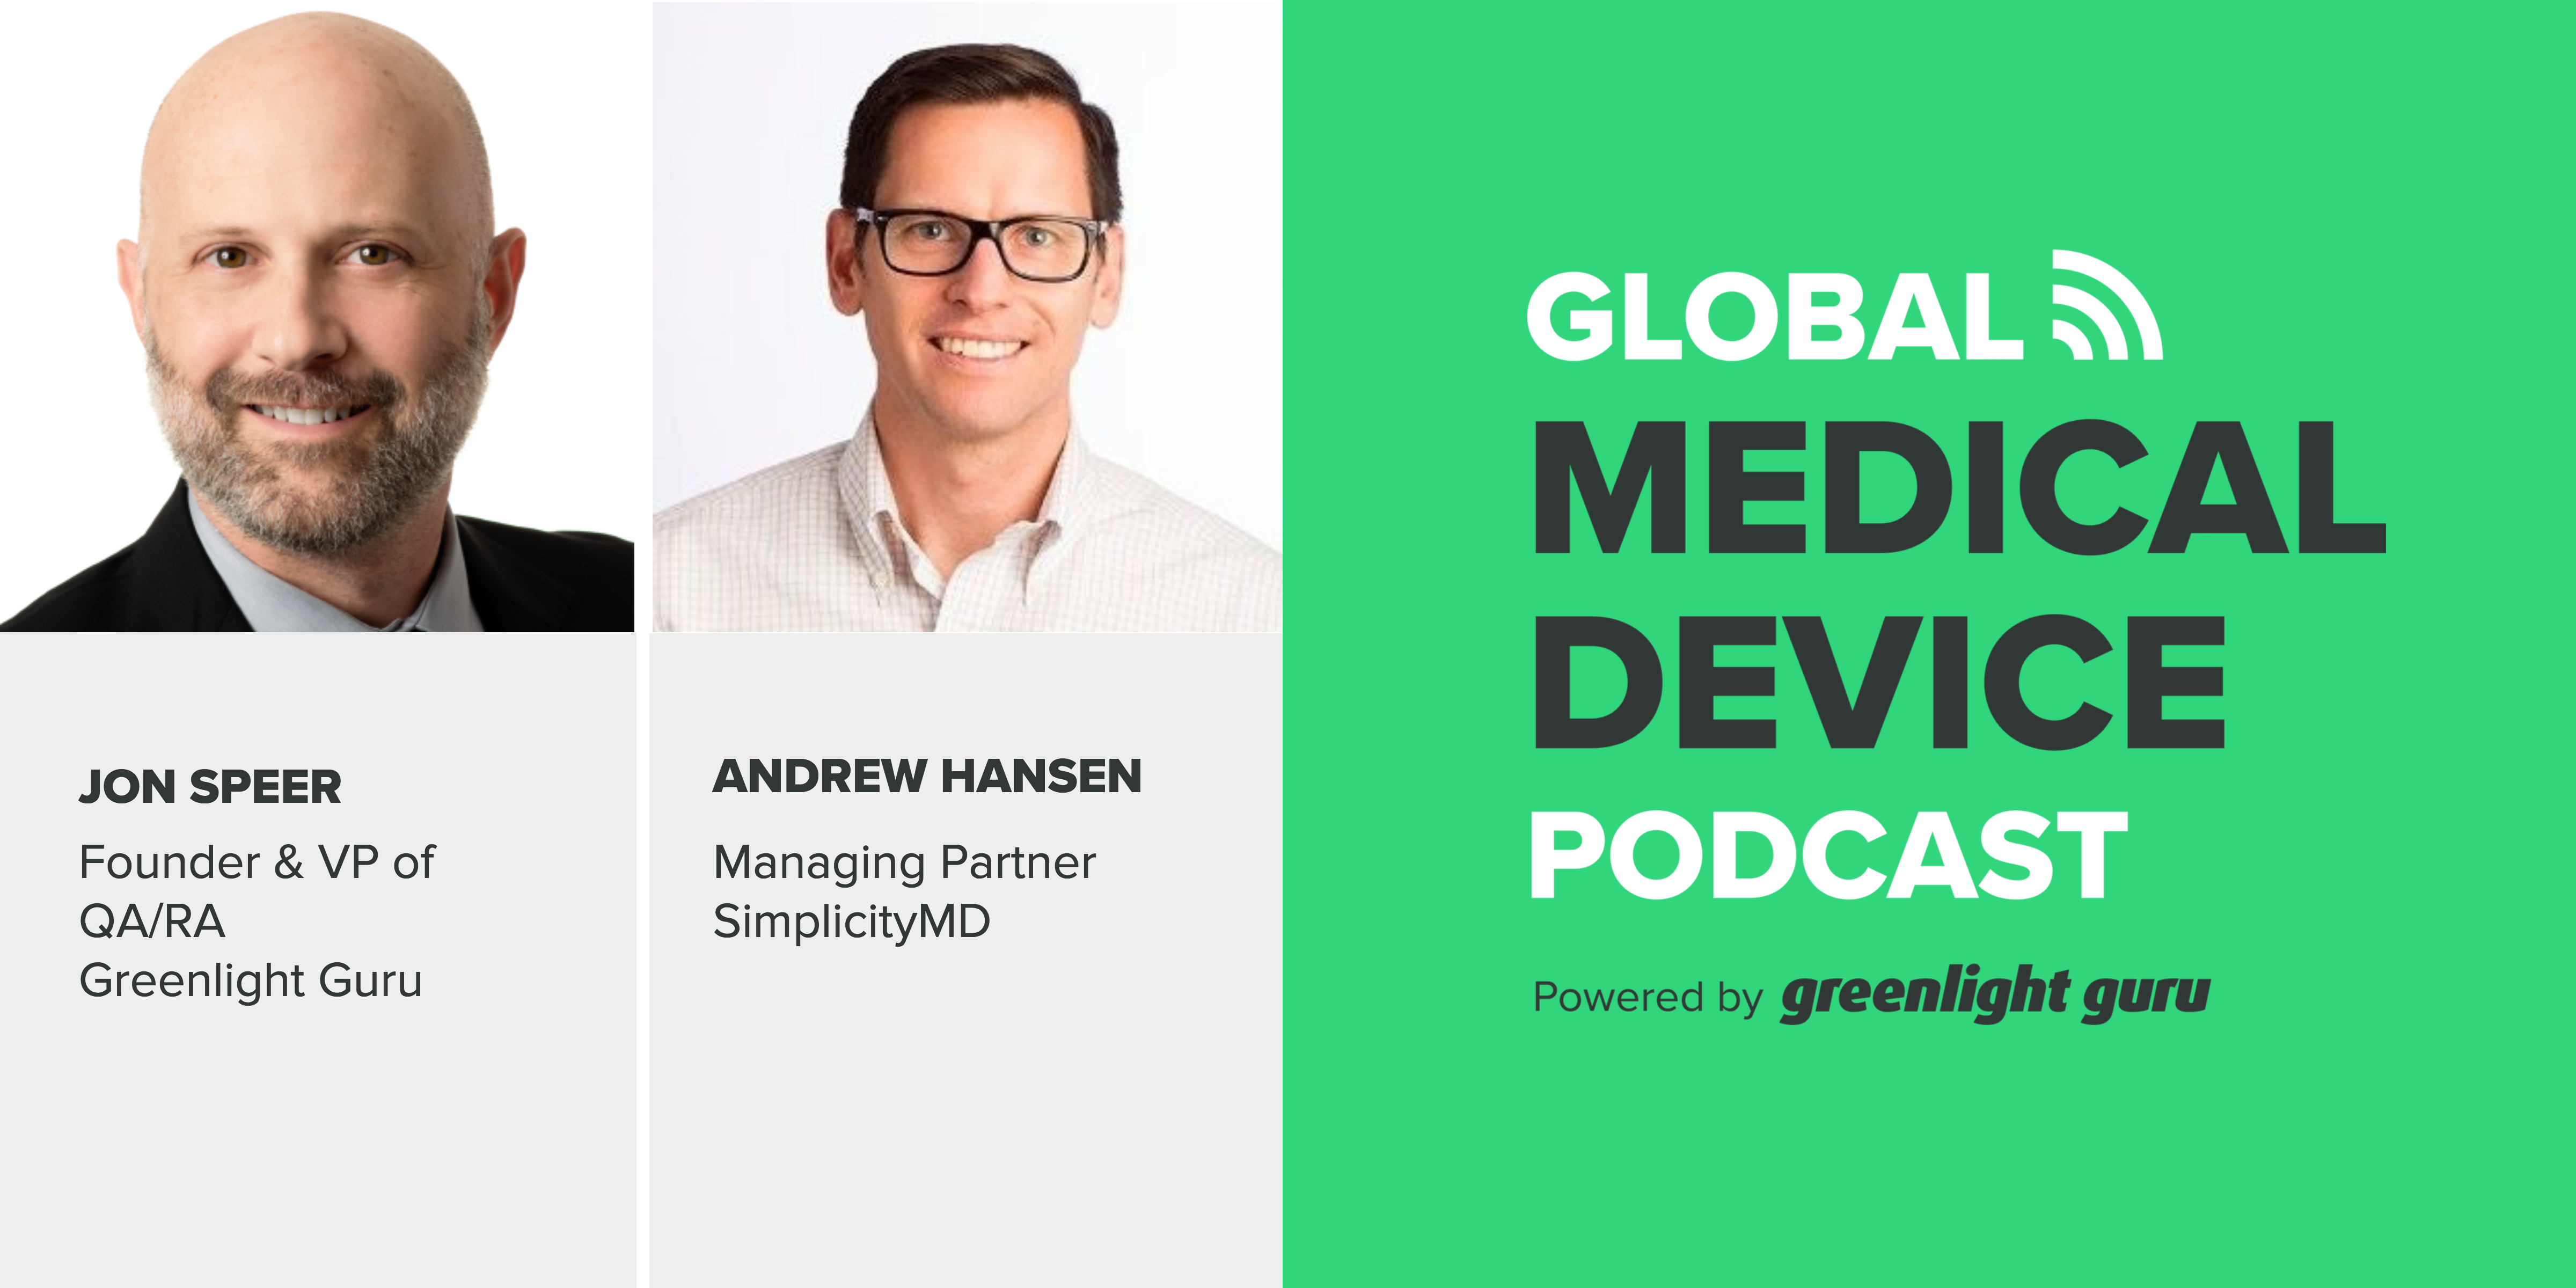 How SimplicityMD Is Leveraging Technology Plus a Lean Approach to Help Get Their Devices to Market Faster - Featured Image